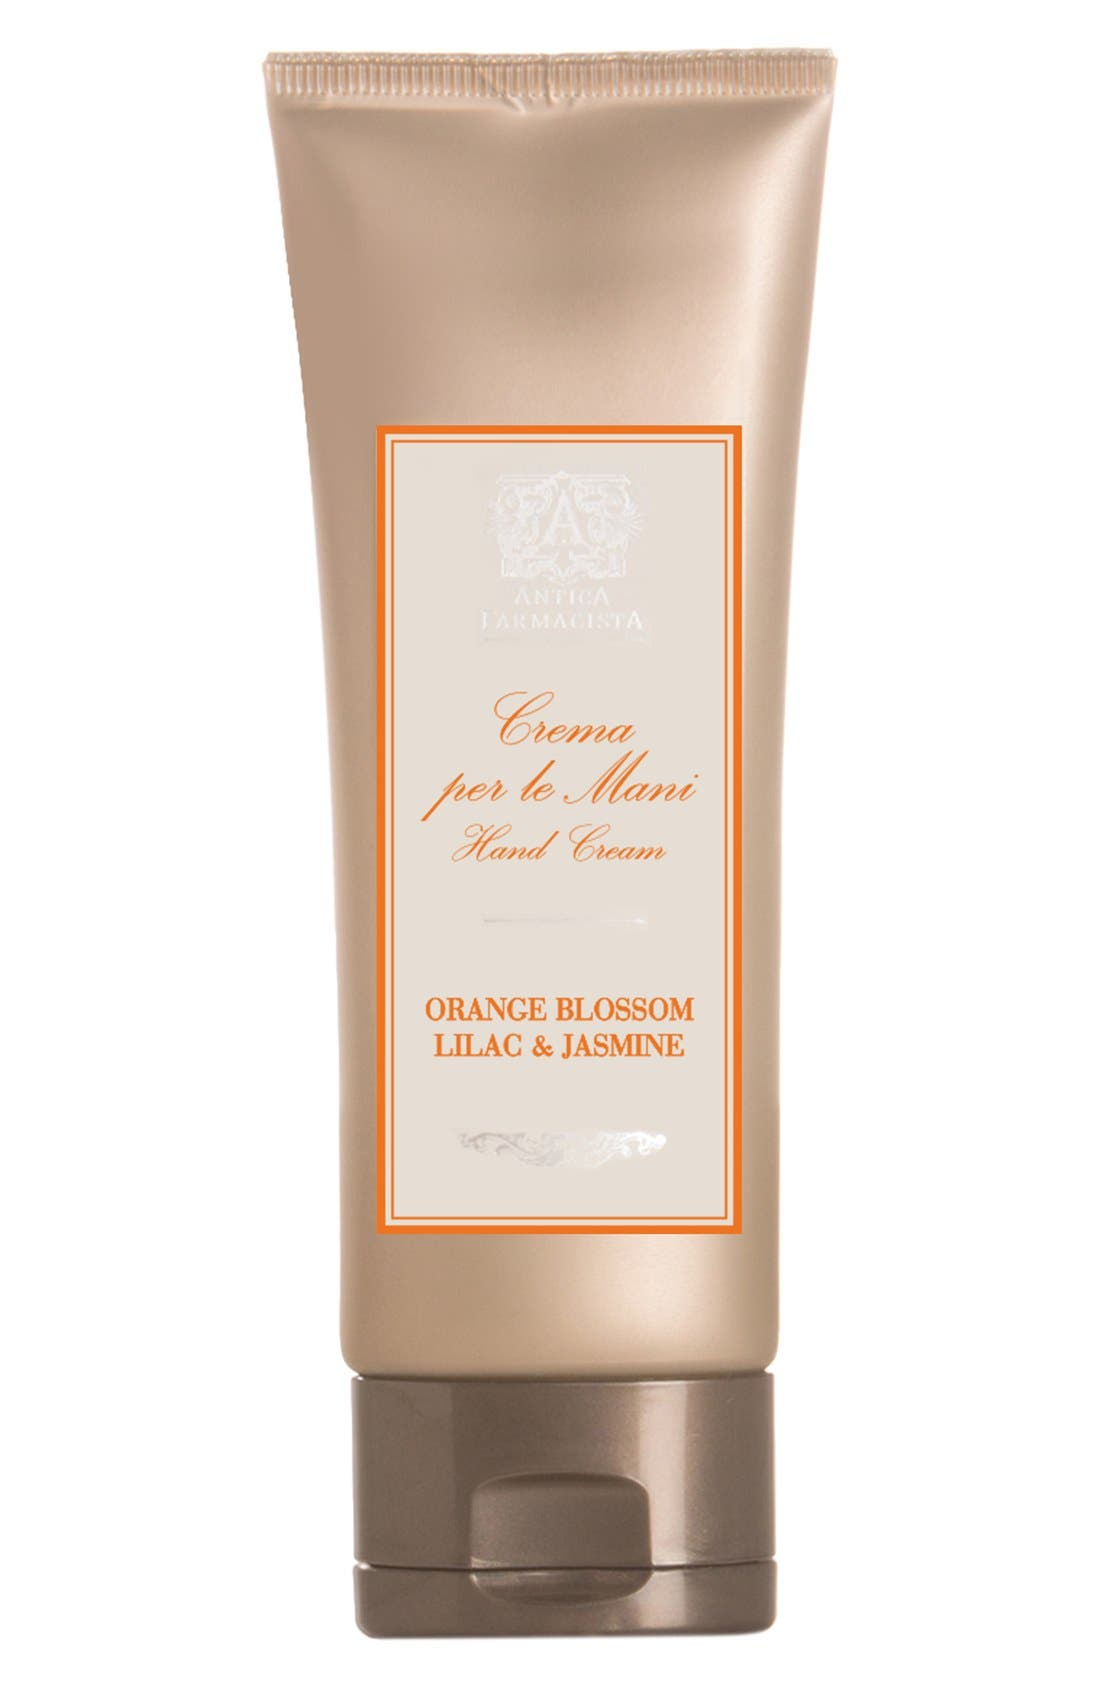 Antica Farmacista 'Orange Blossom' Hand Cream